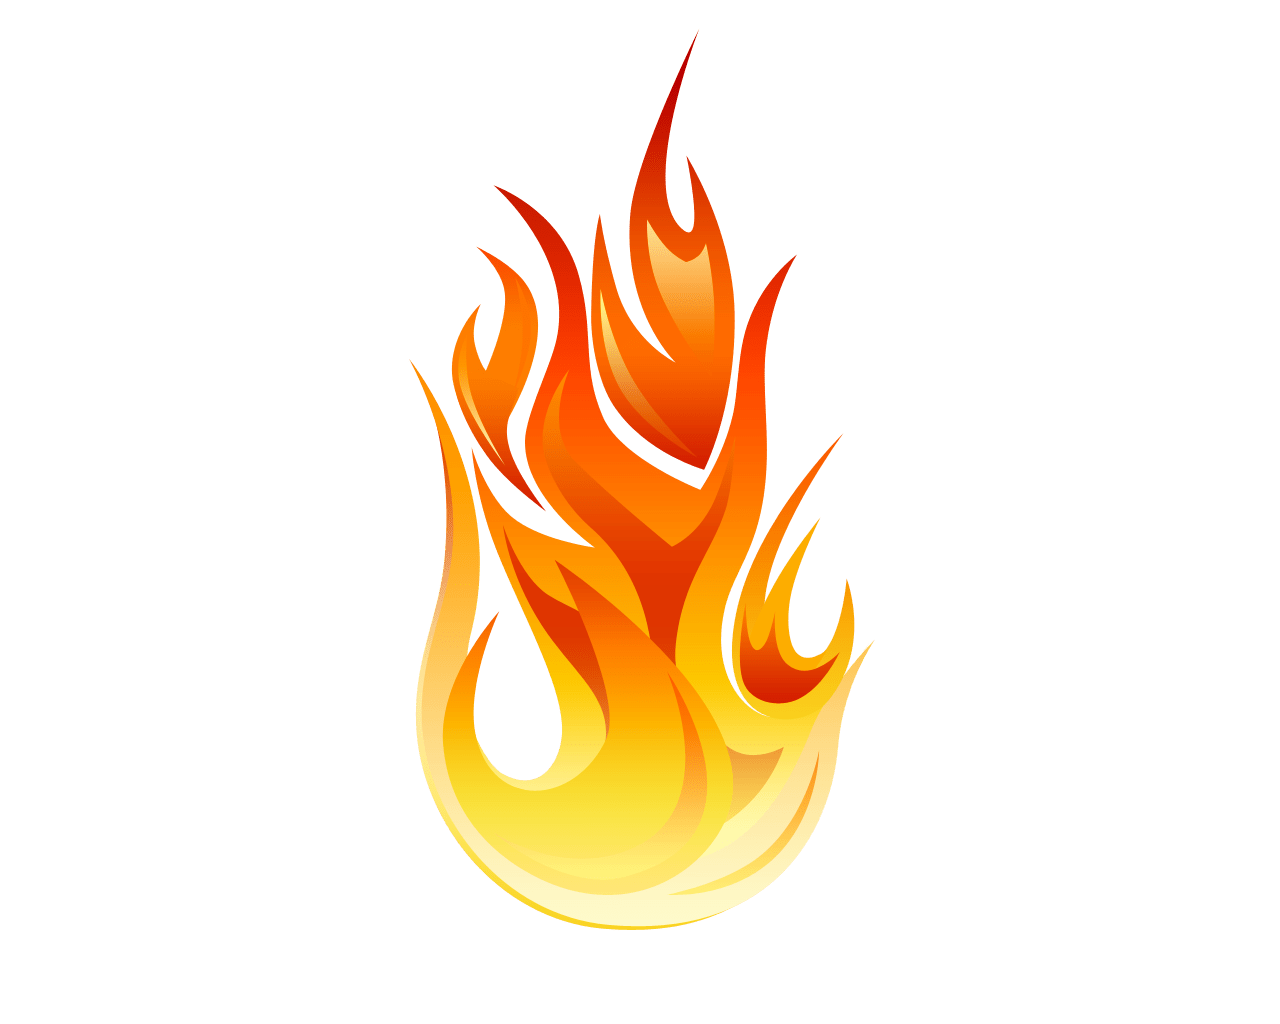 hight resolution of holy ghost fire png banner download fireball clipart holy spirit transbordando png fogo the